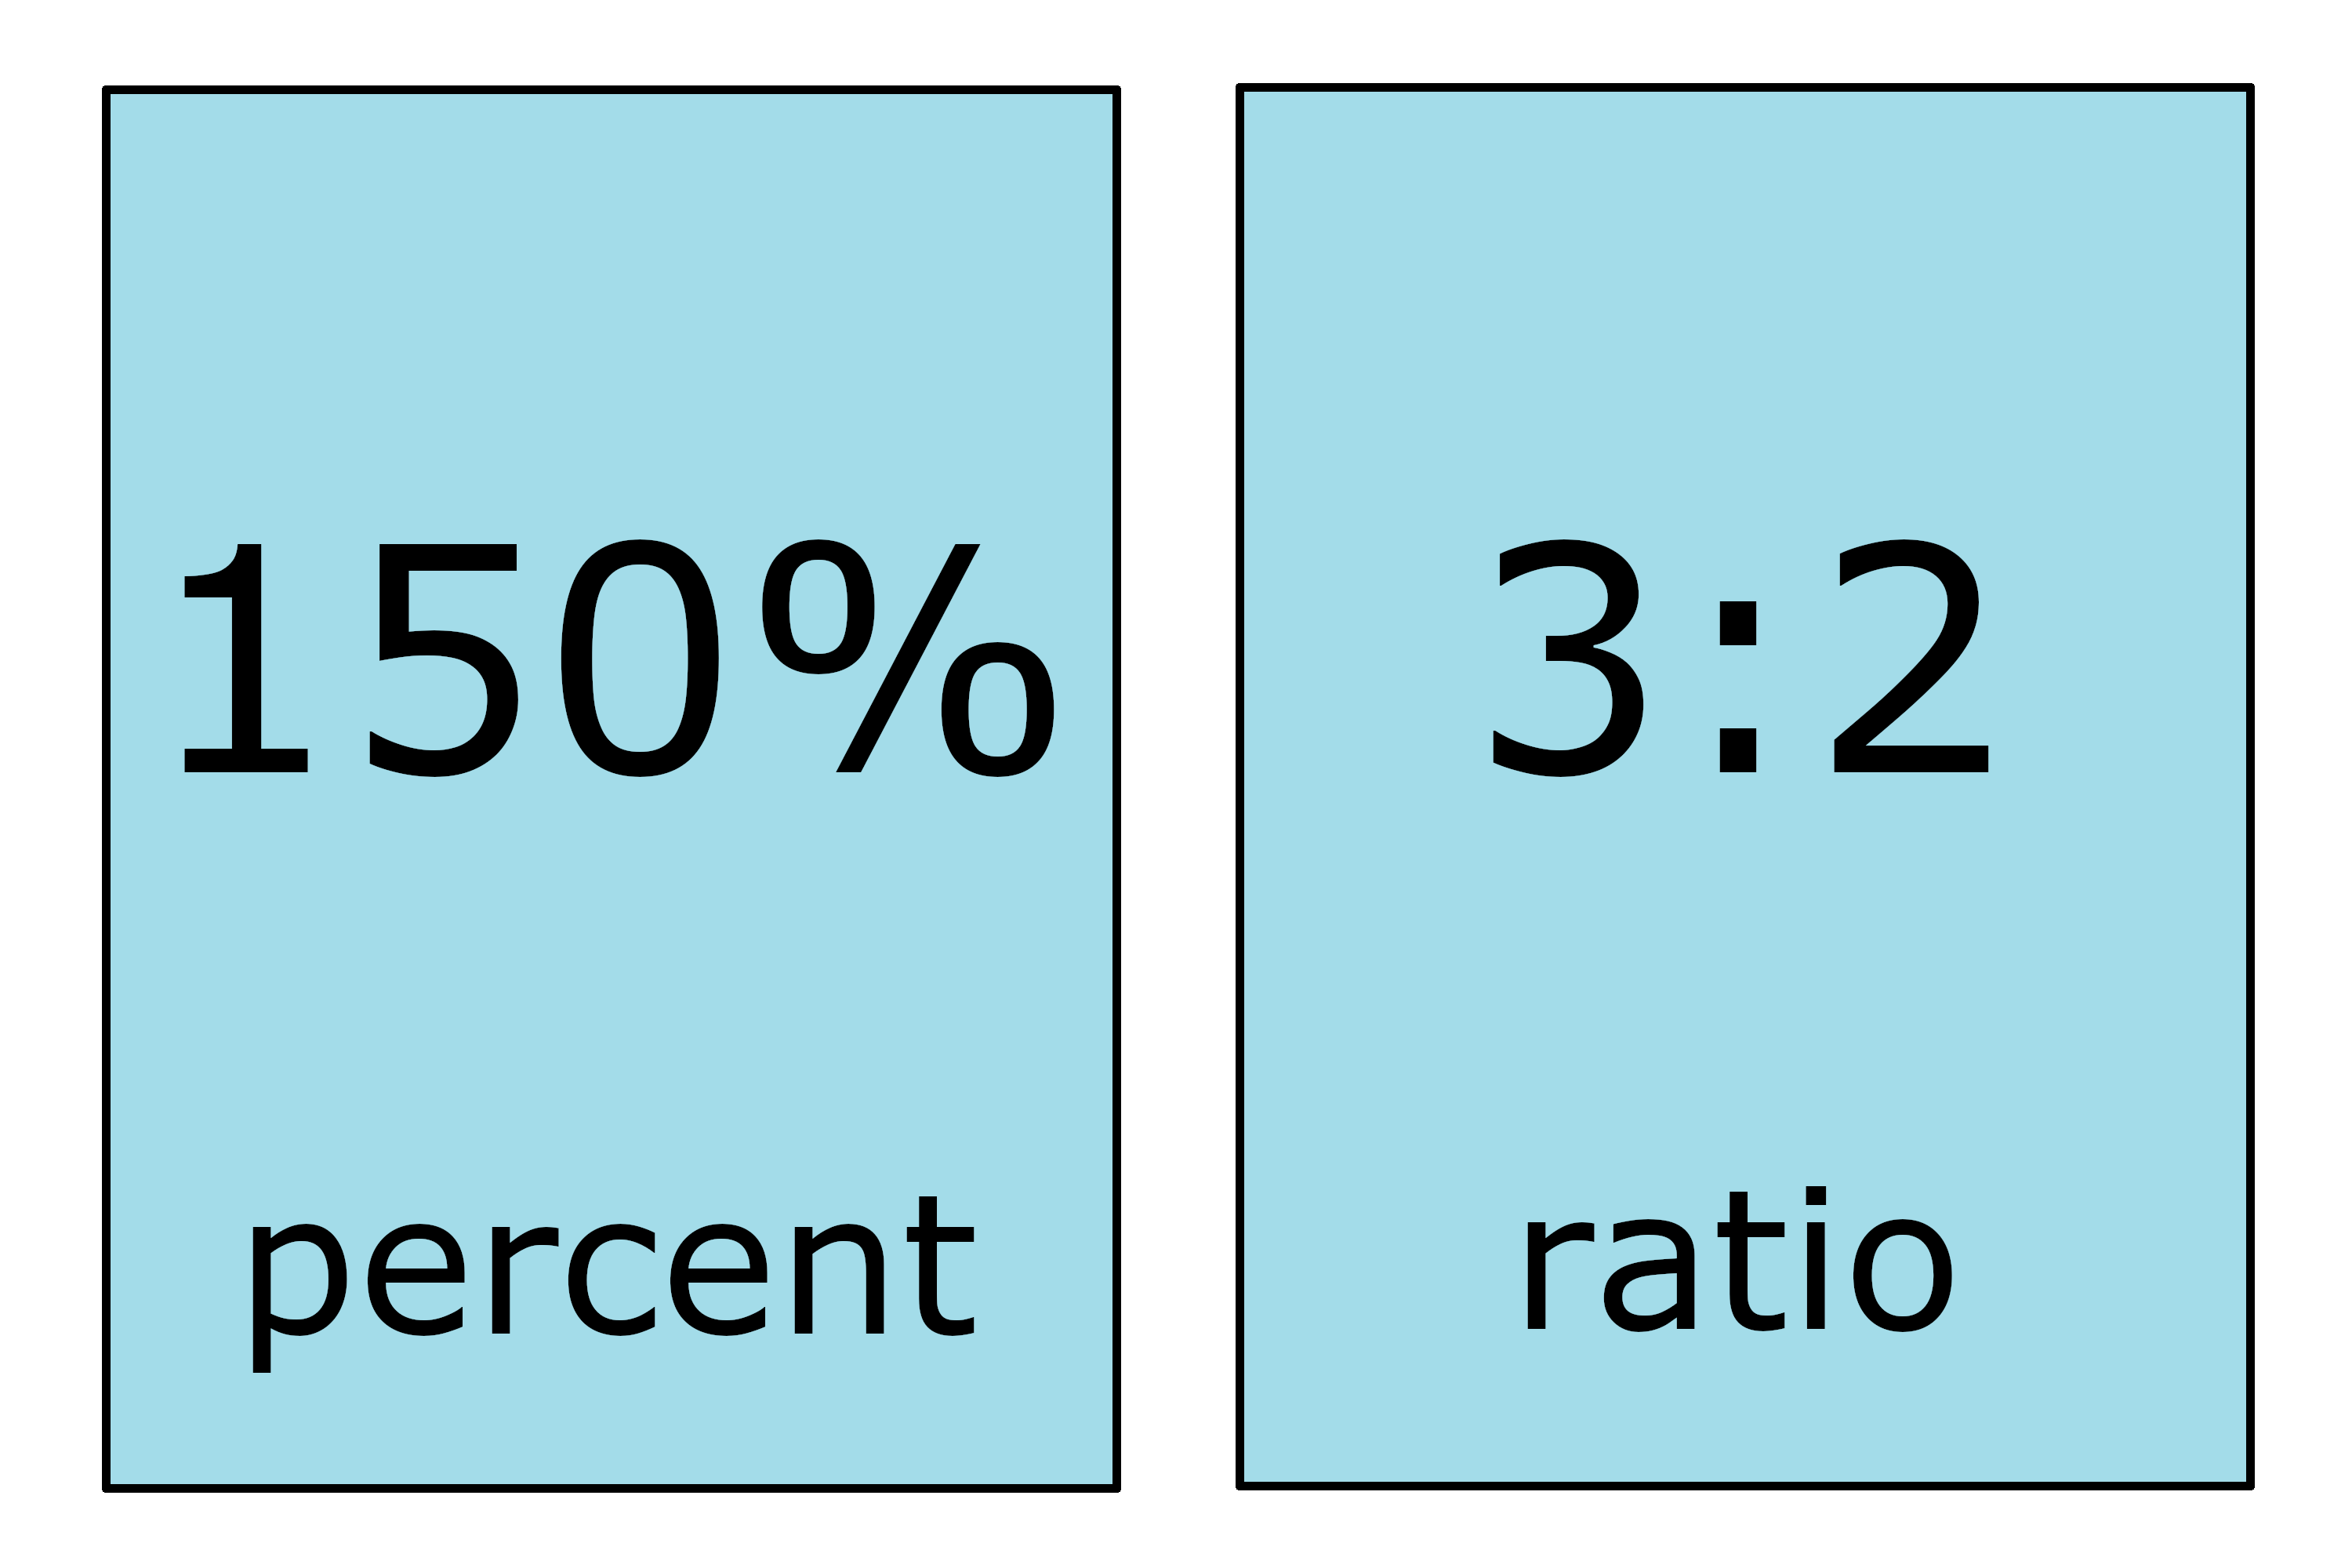 illustration showing that 150% is equal to the ratio 3:2